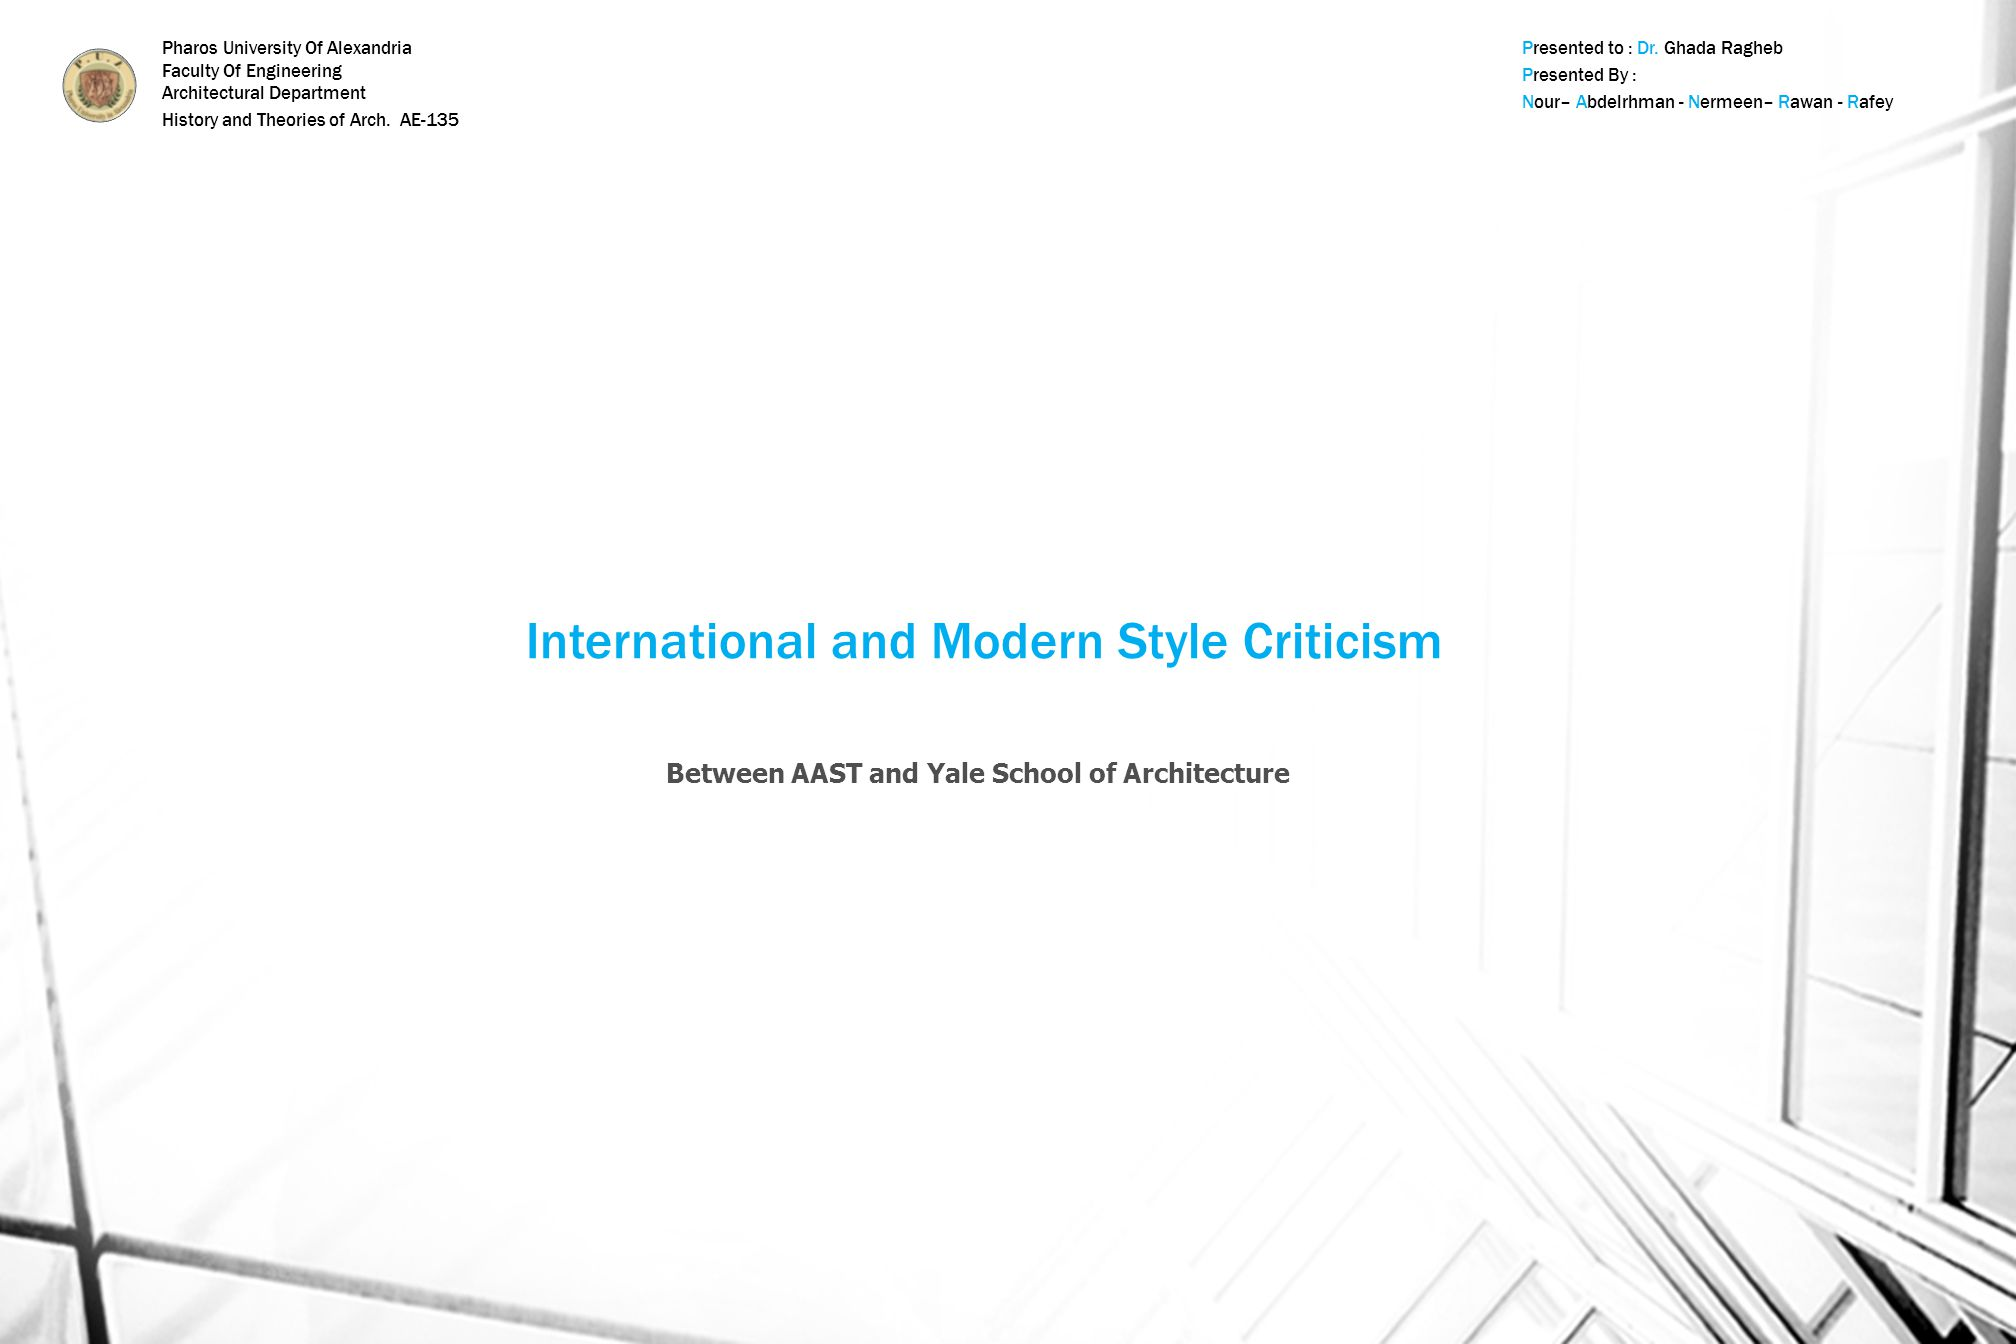 International and Modern Style Criticism